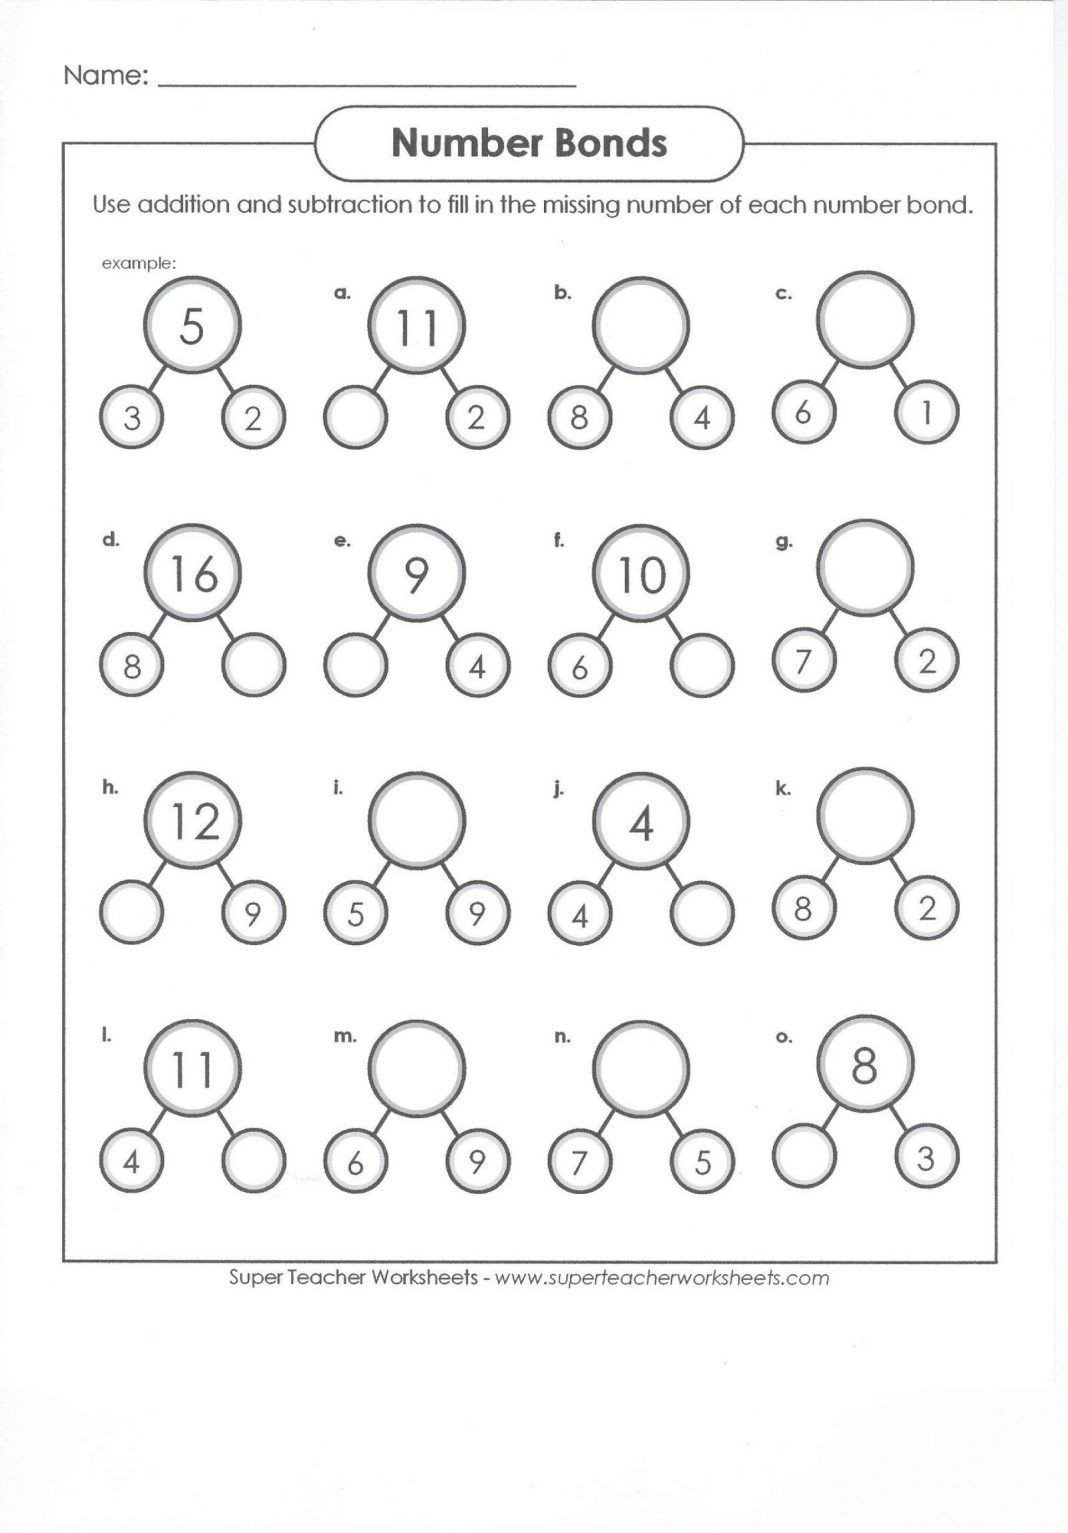 Number Bond Worksheets 2nd Grade Pin On Daddy